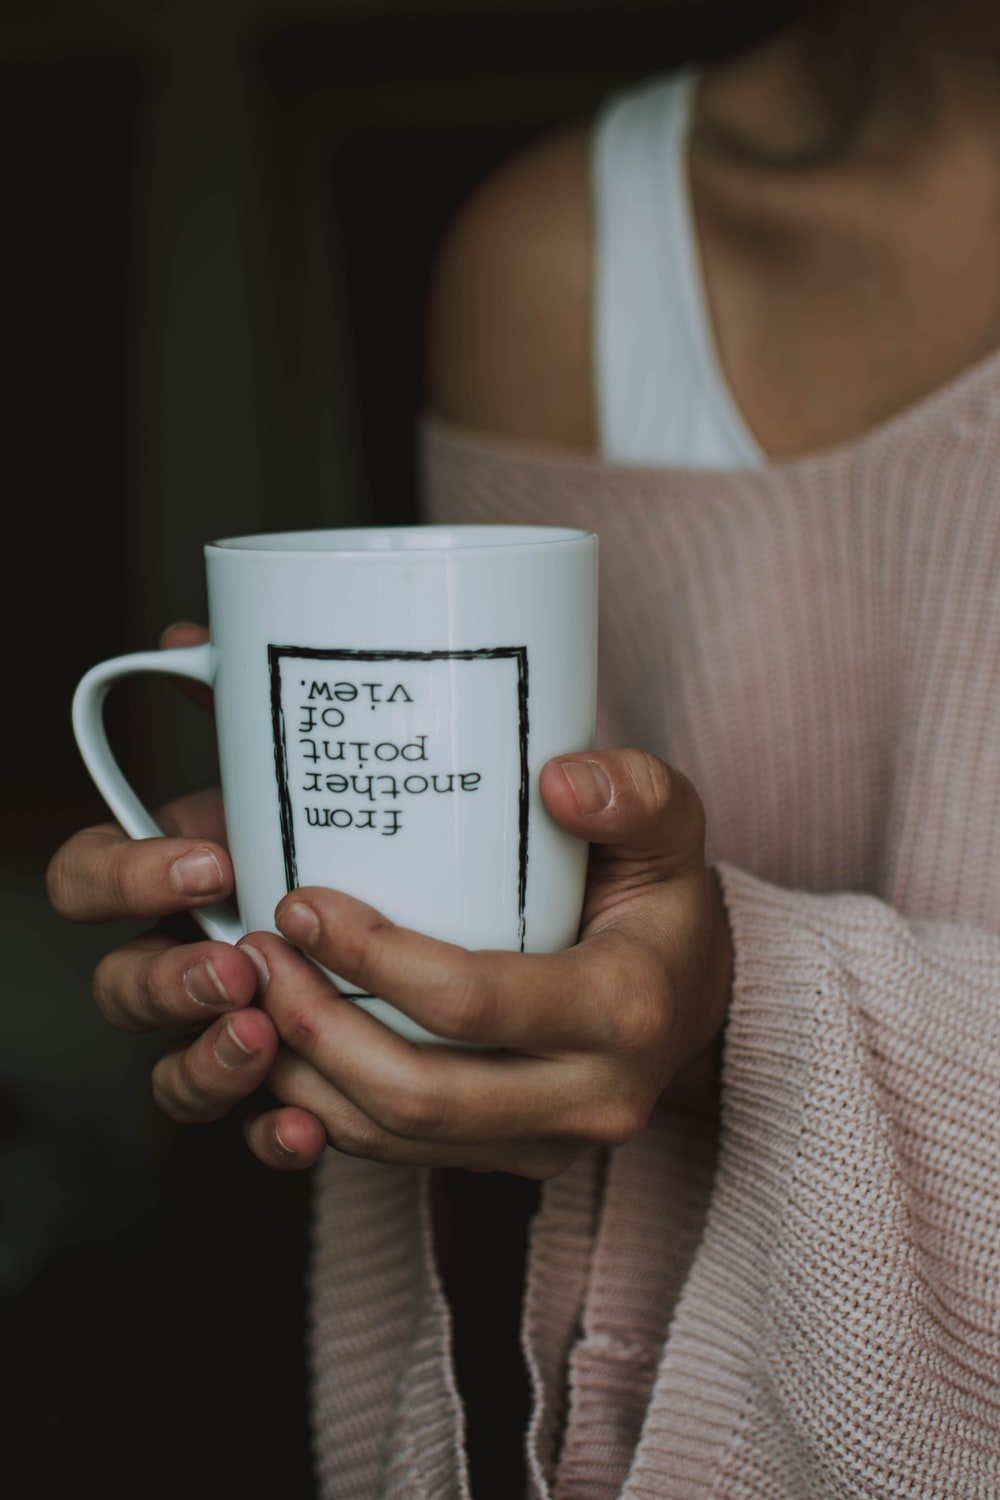 hands holding coffee cup pictures download free images on unsplash